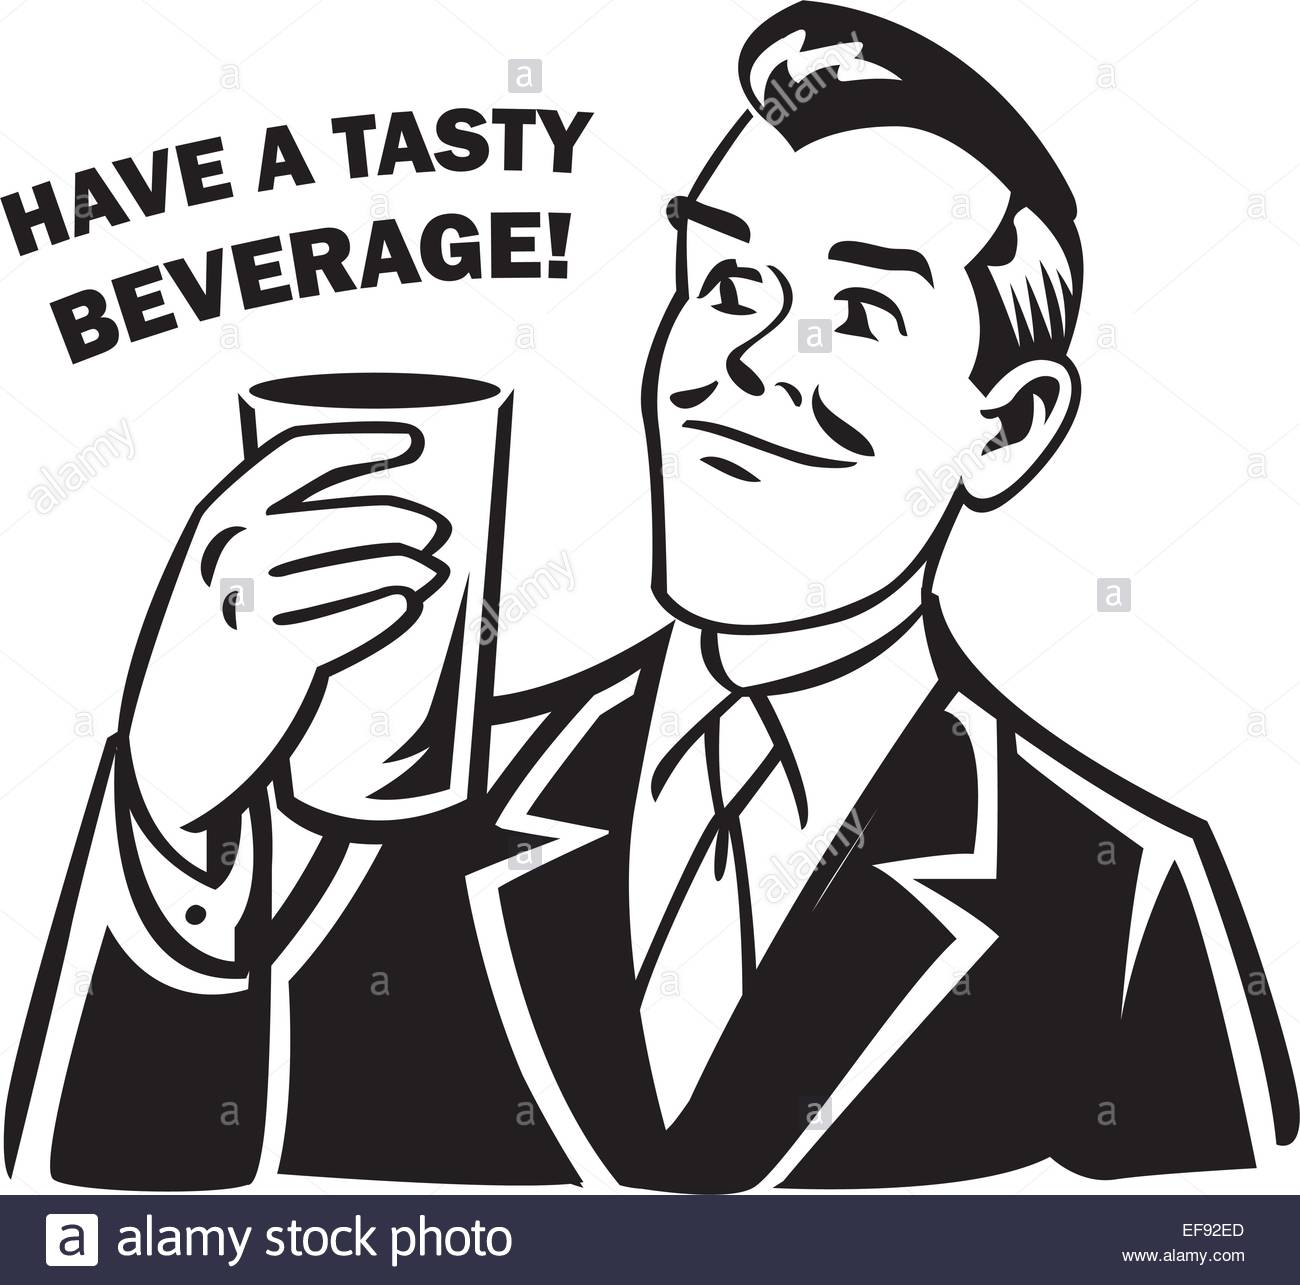 A Man Holding A Glass With The Words Have A Tasty Beverage! Above.